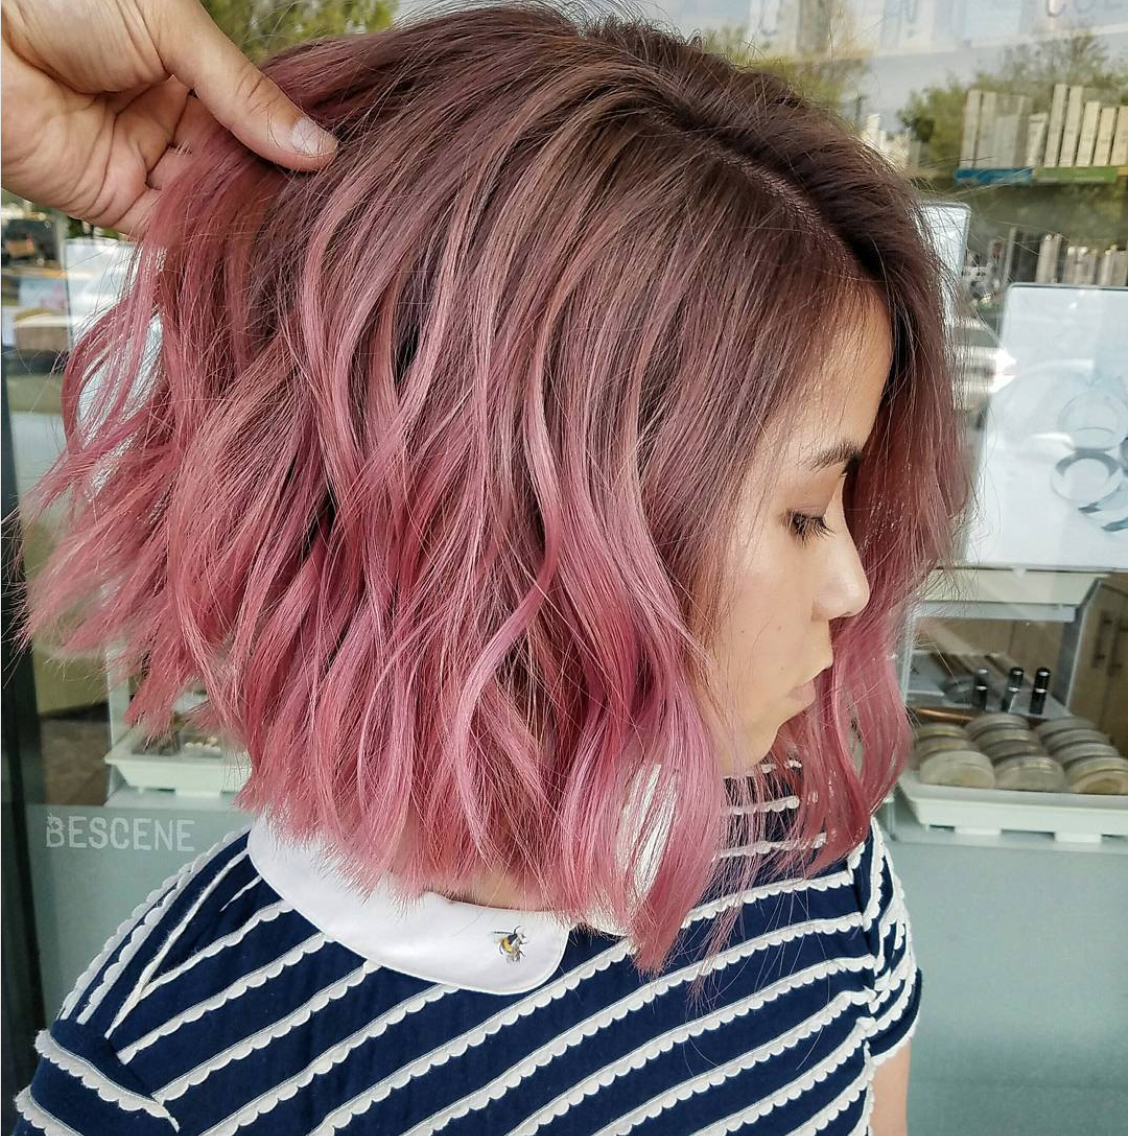 35 Hottest Short Ombre Hairstyles 2020 Best Ombre Hair Color Ideas Short Ombre Hair Hair Styles Brown Ombre Hair